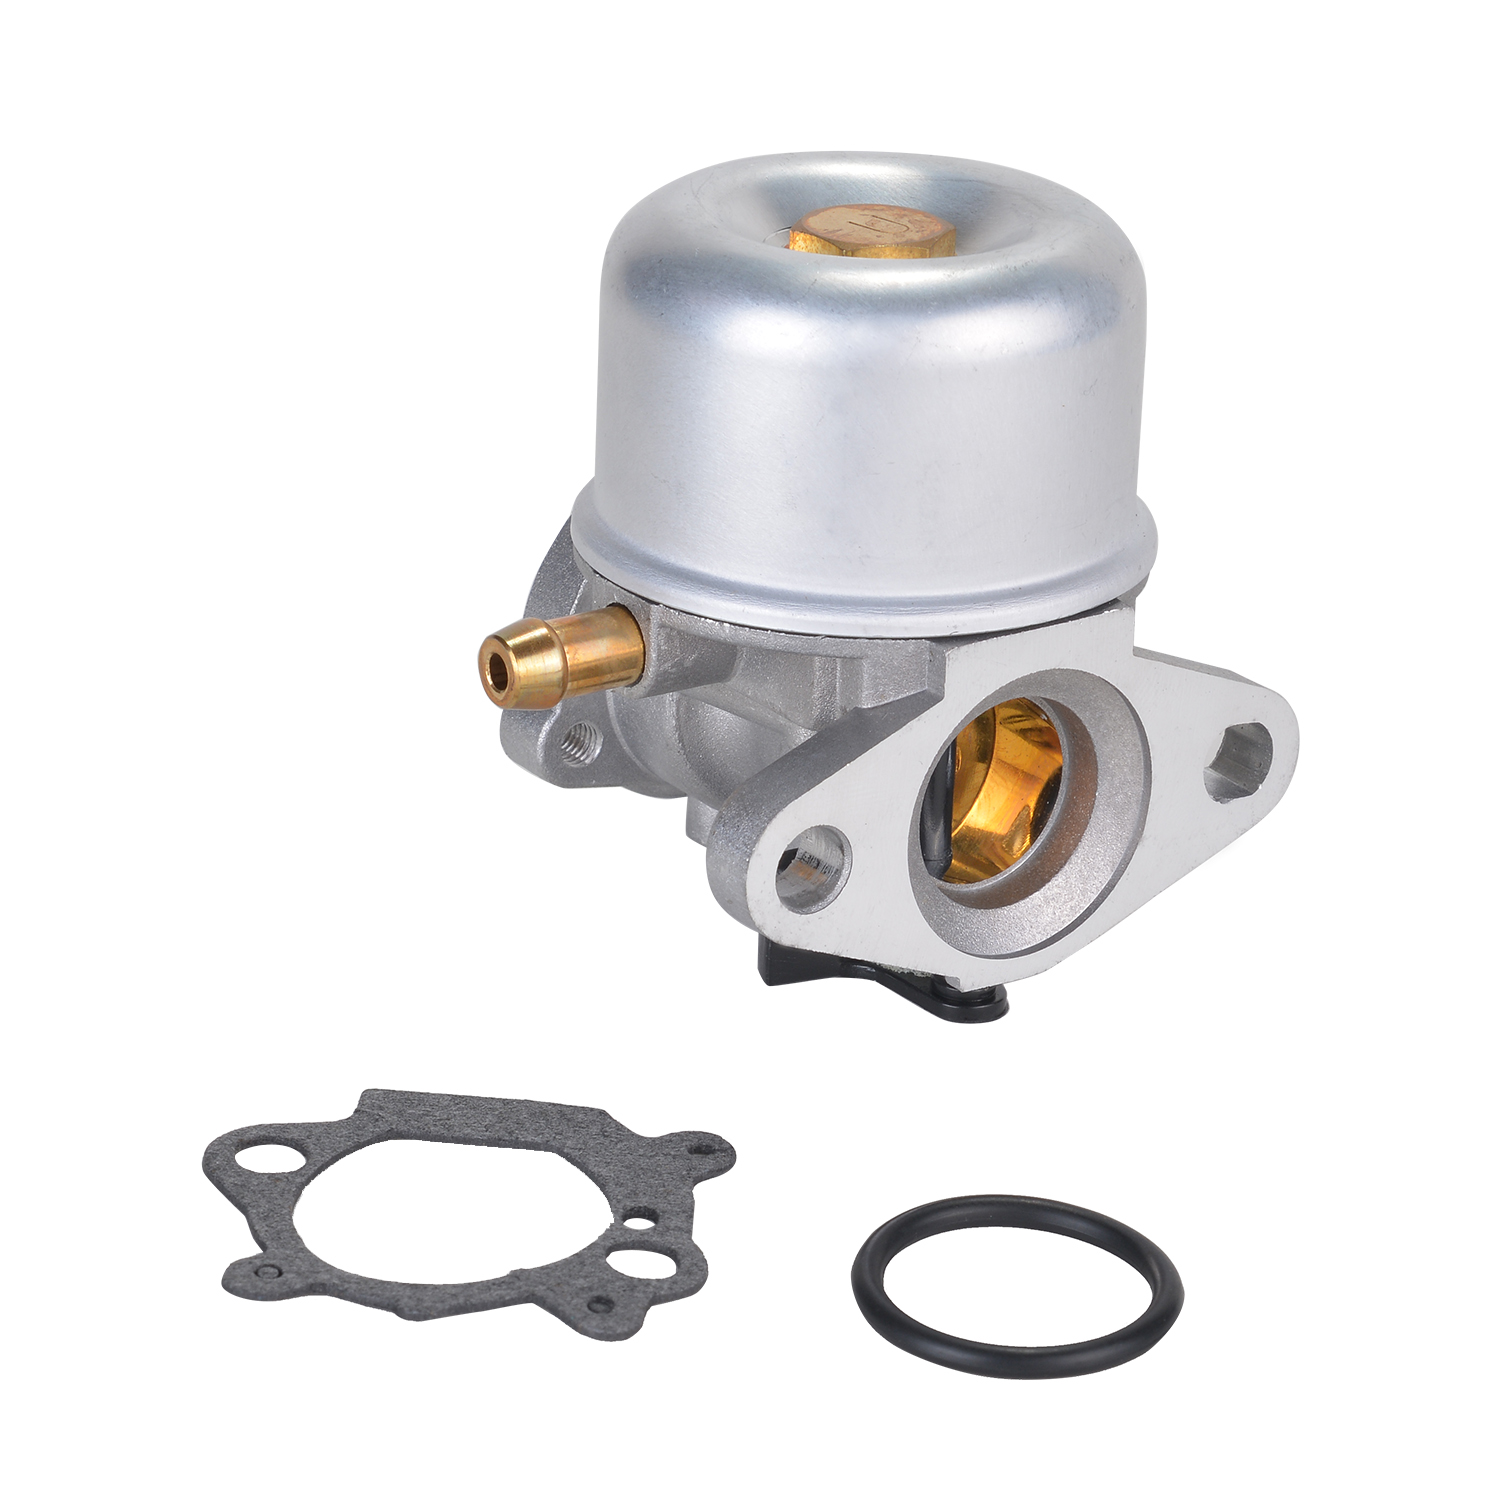 AGPtek Carburetor Replacement for Briggs & Stratton 799871 790845 796707  799866 794304 (Engine Motor Lawn Mower part)